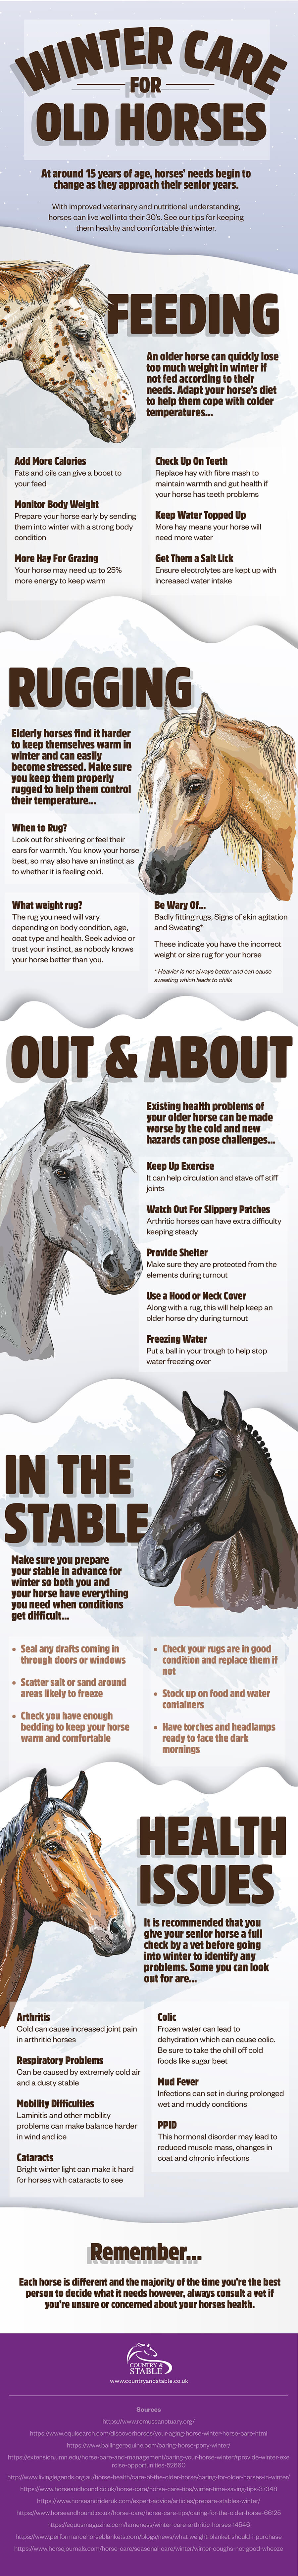 Winter care for old horses infographic